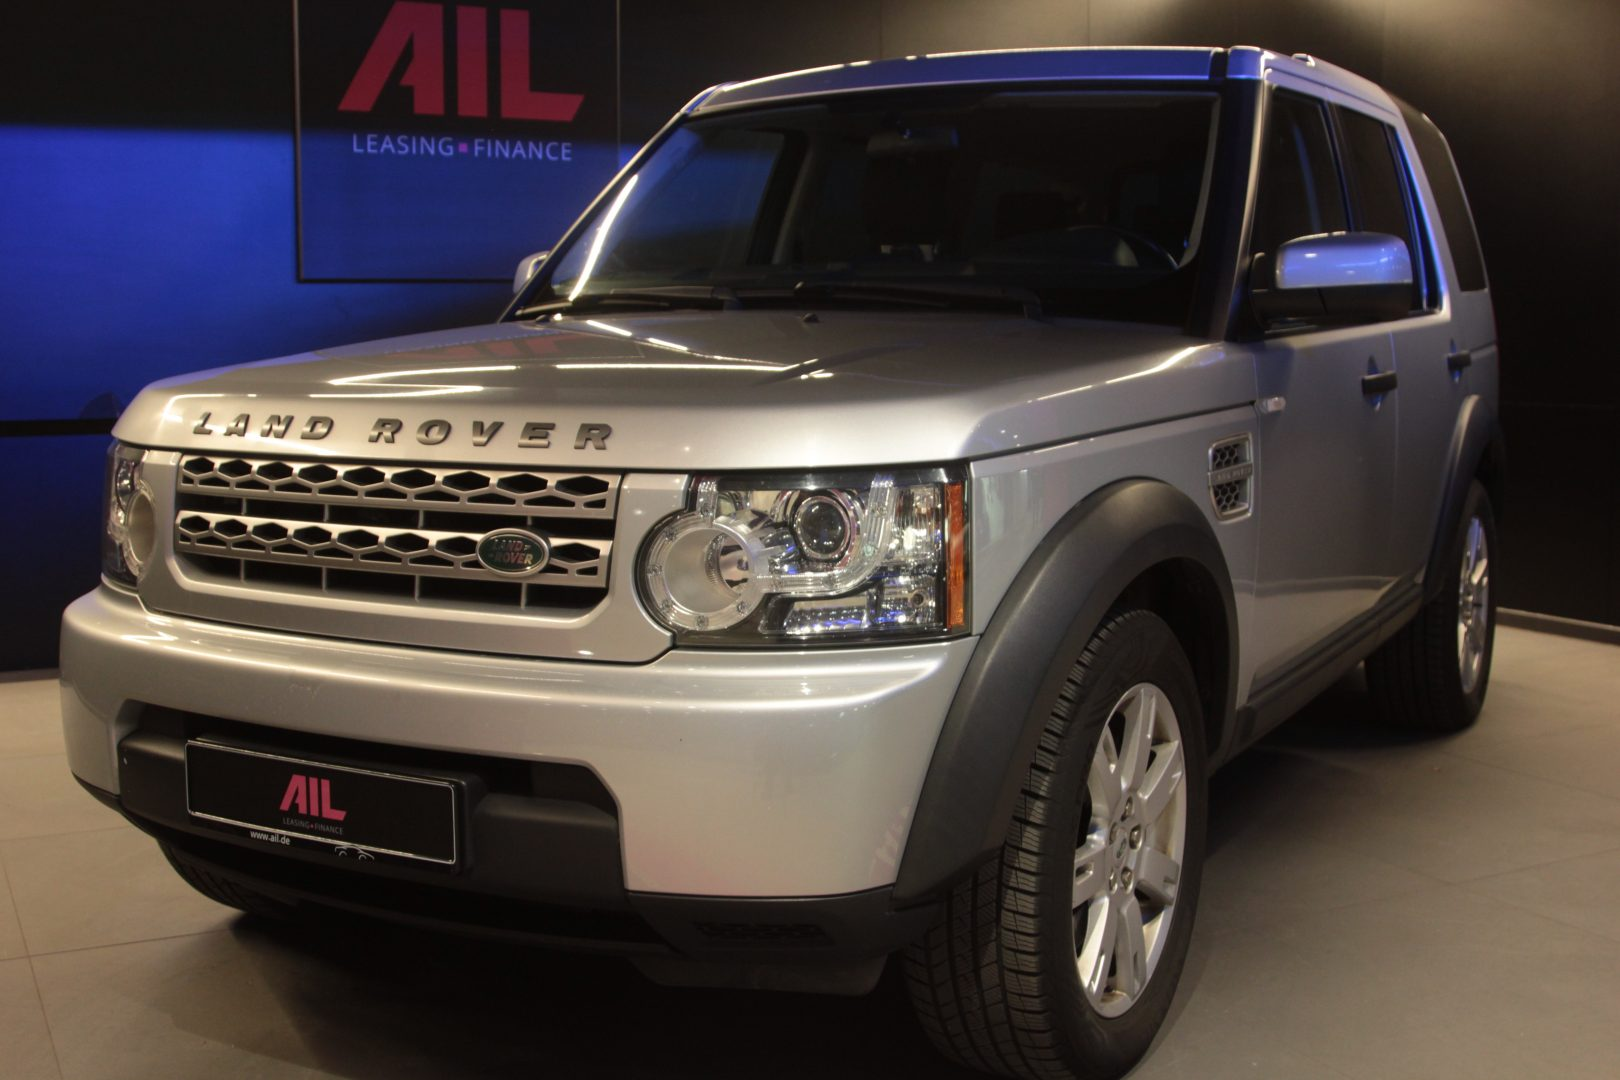 AIL Land Rover Discovery 4 TDV6 2